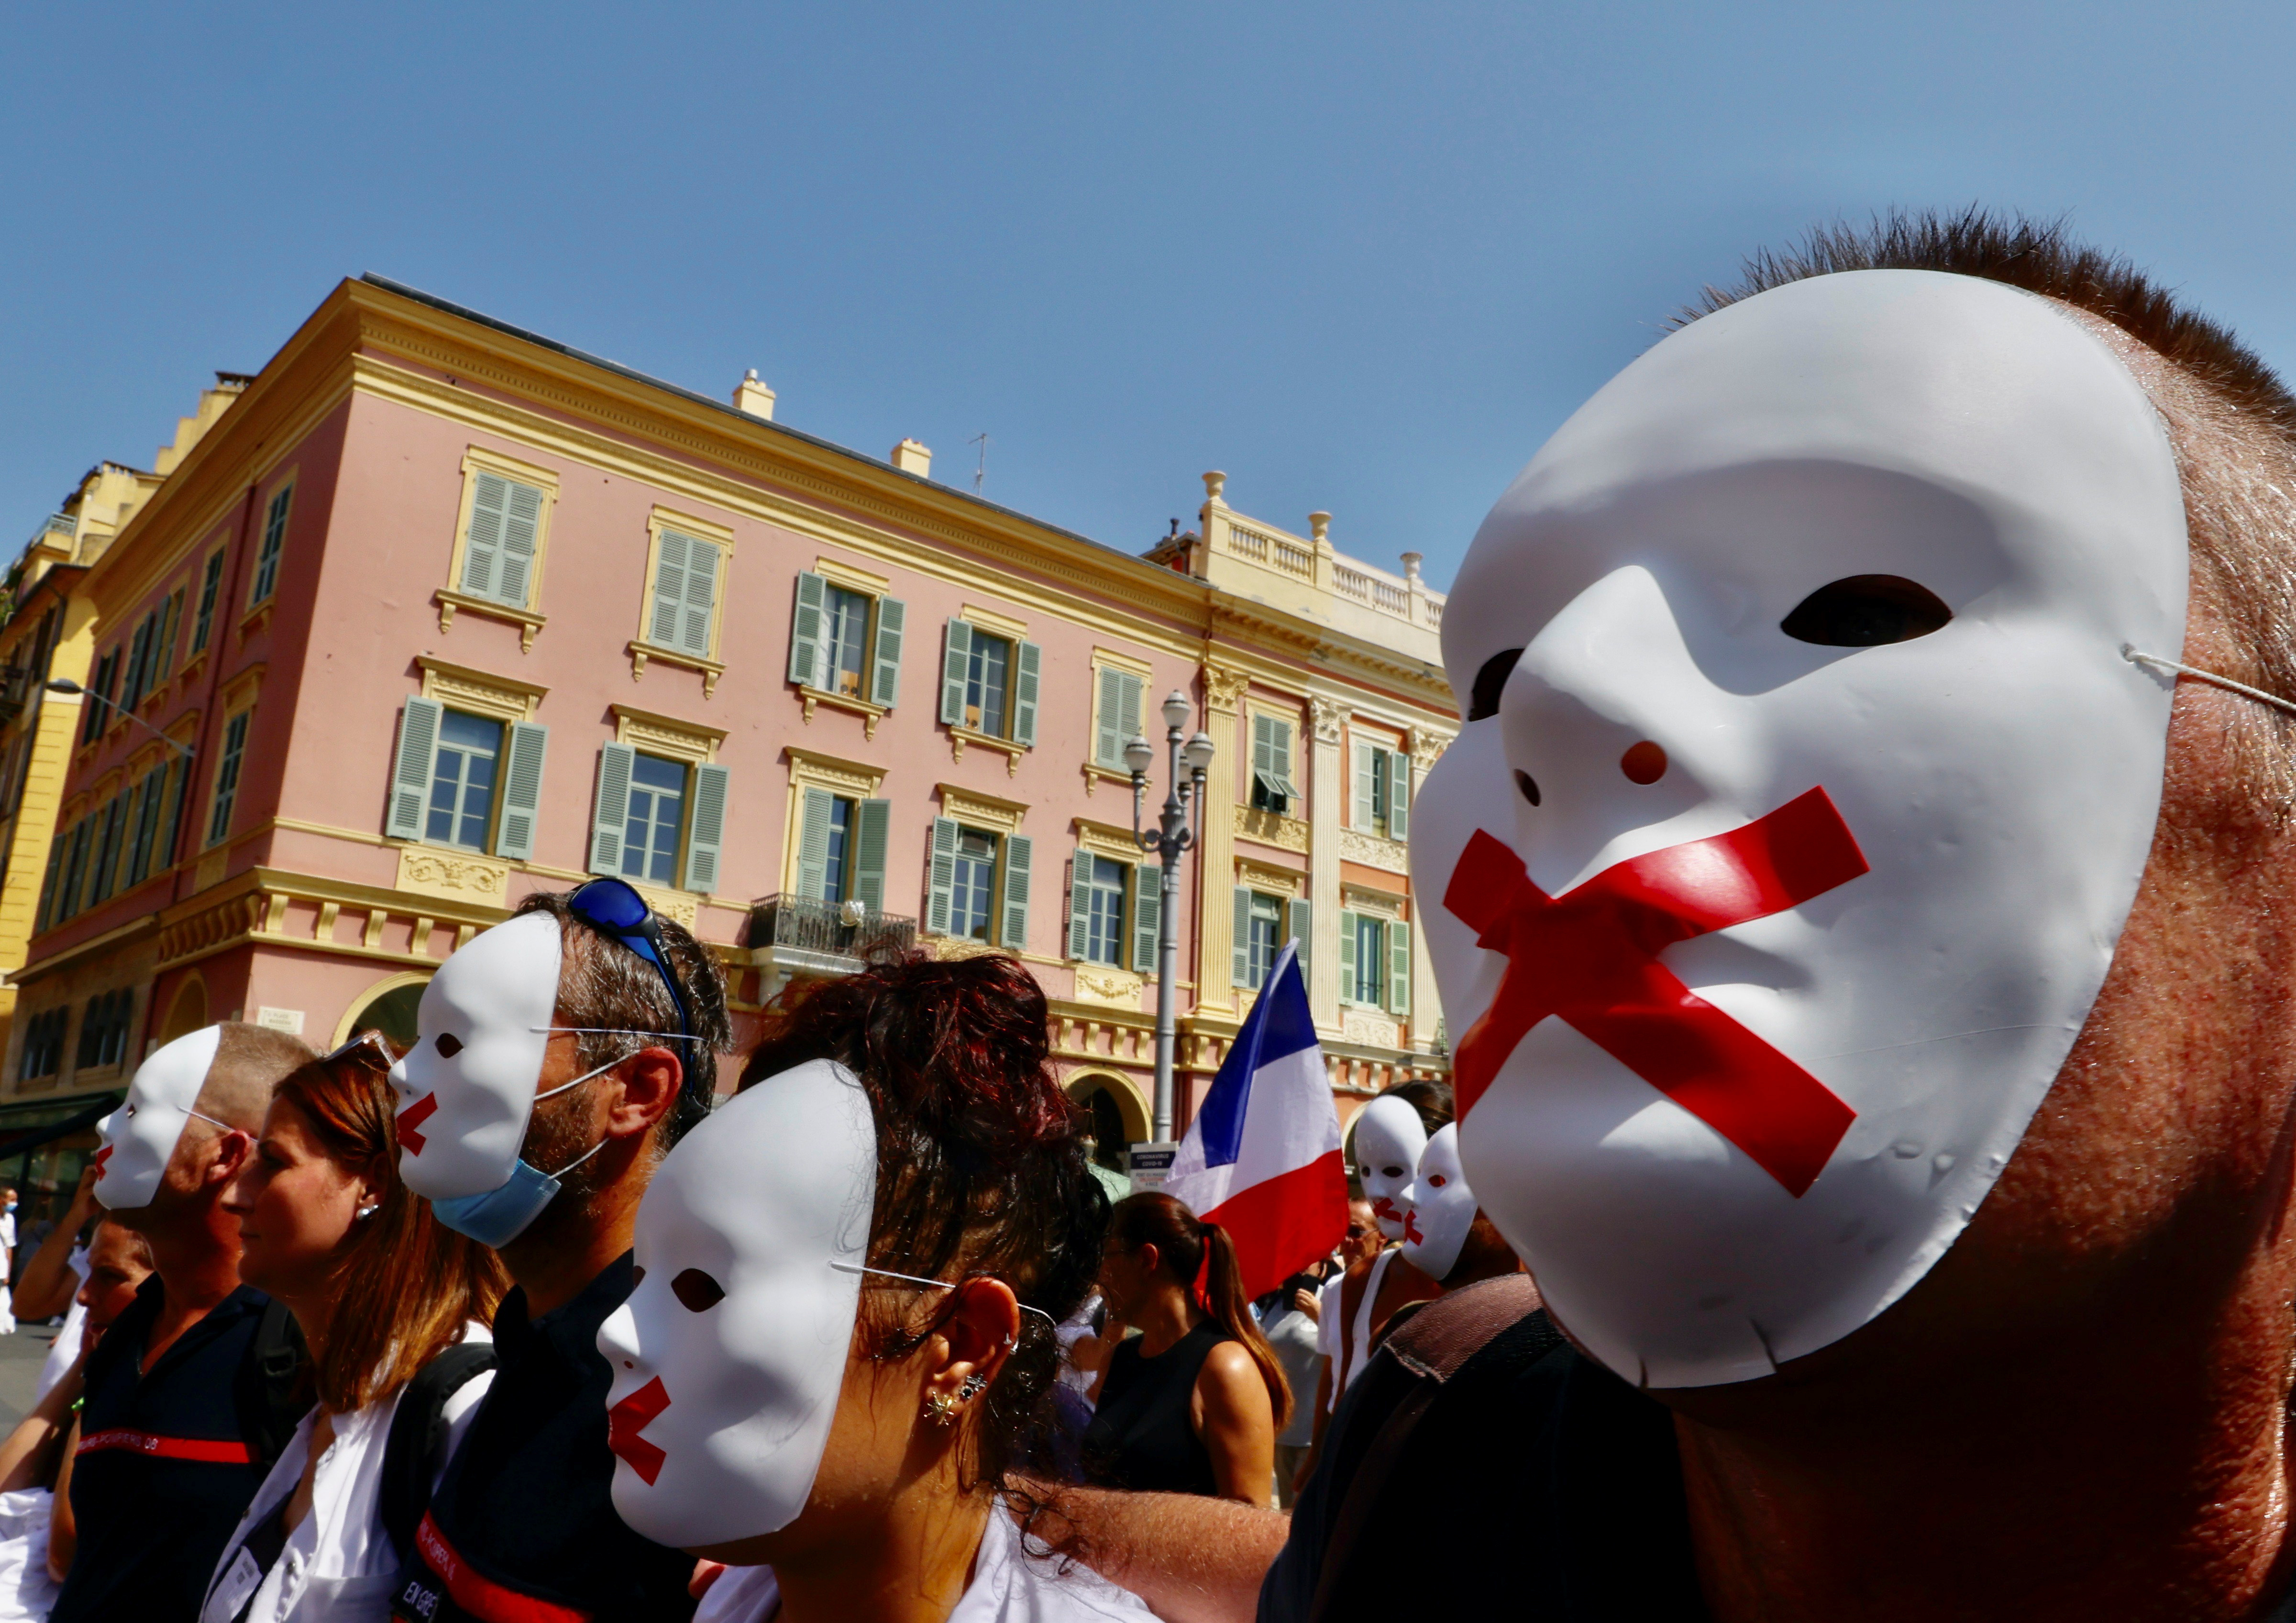 Protesters march against the coronavirus disease (COVID-19) vaccination and the use of health passes to restaurants, bars, trains and planes in Nice, France, August 14, 2021. REUTERS/Eric Gaillard